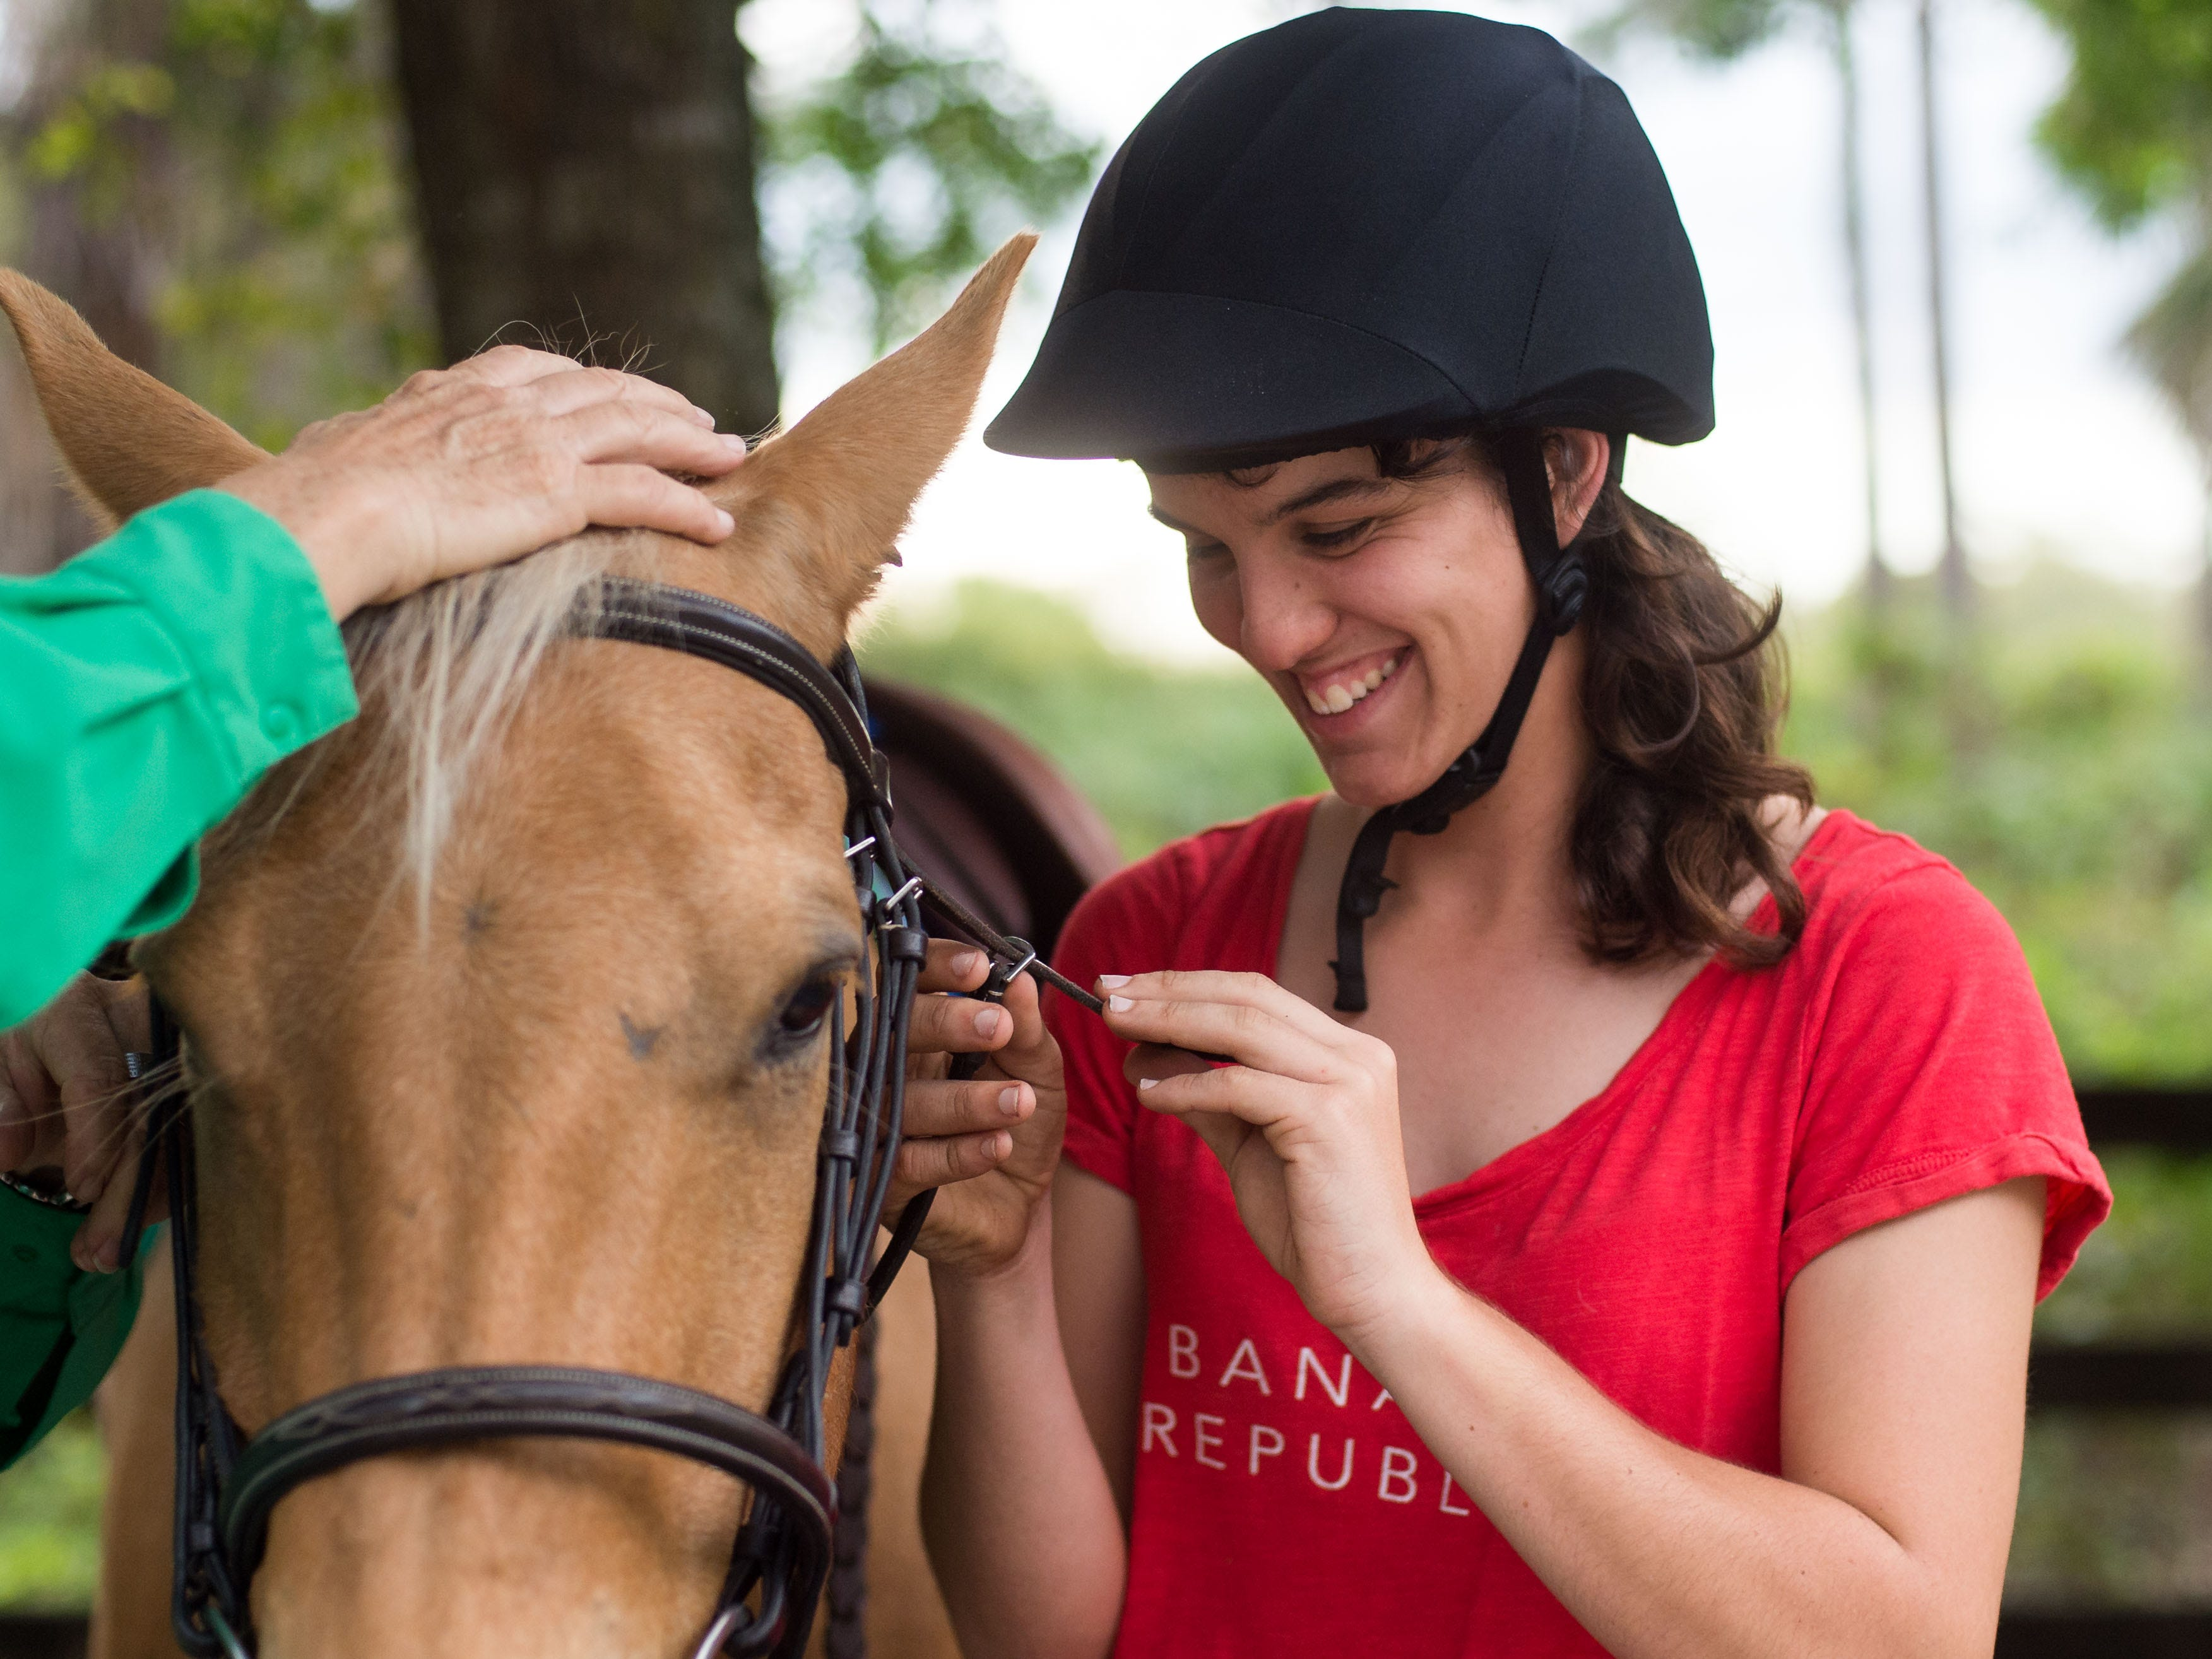 Equestrian Cori Davis, of Palm City, prepares Jaye, one of her family's horses, with help from riding instructor Patty Nelson at Davis' home March 1, 2019, in Palm City. Davis will be traveling to Abu Dhabi, United Arab Emirates, to compete in the 2019 Special Olympics World Games, which begin March 14.